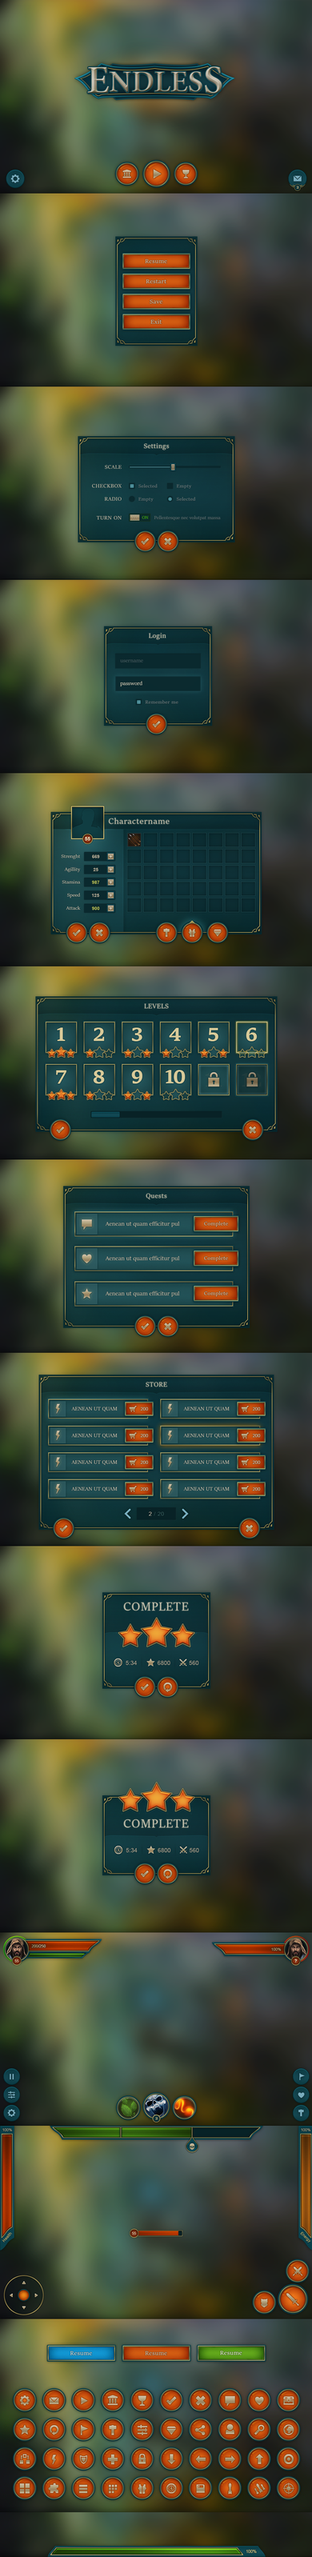 Endless Mobile UI by Evil-S